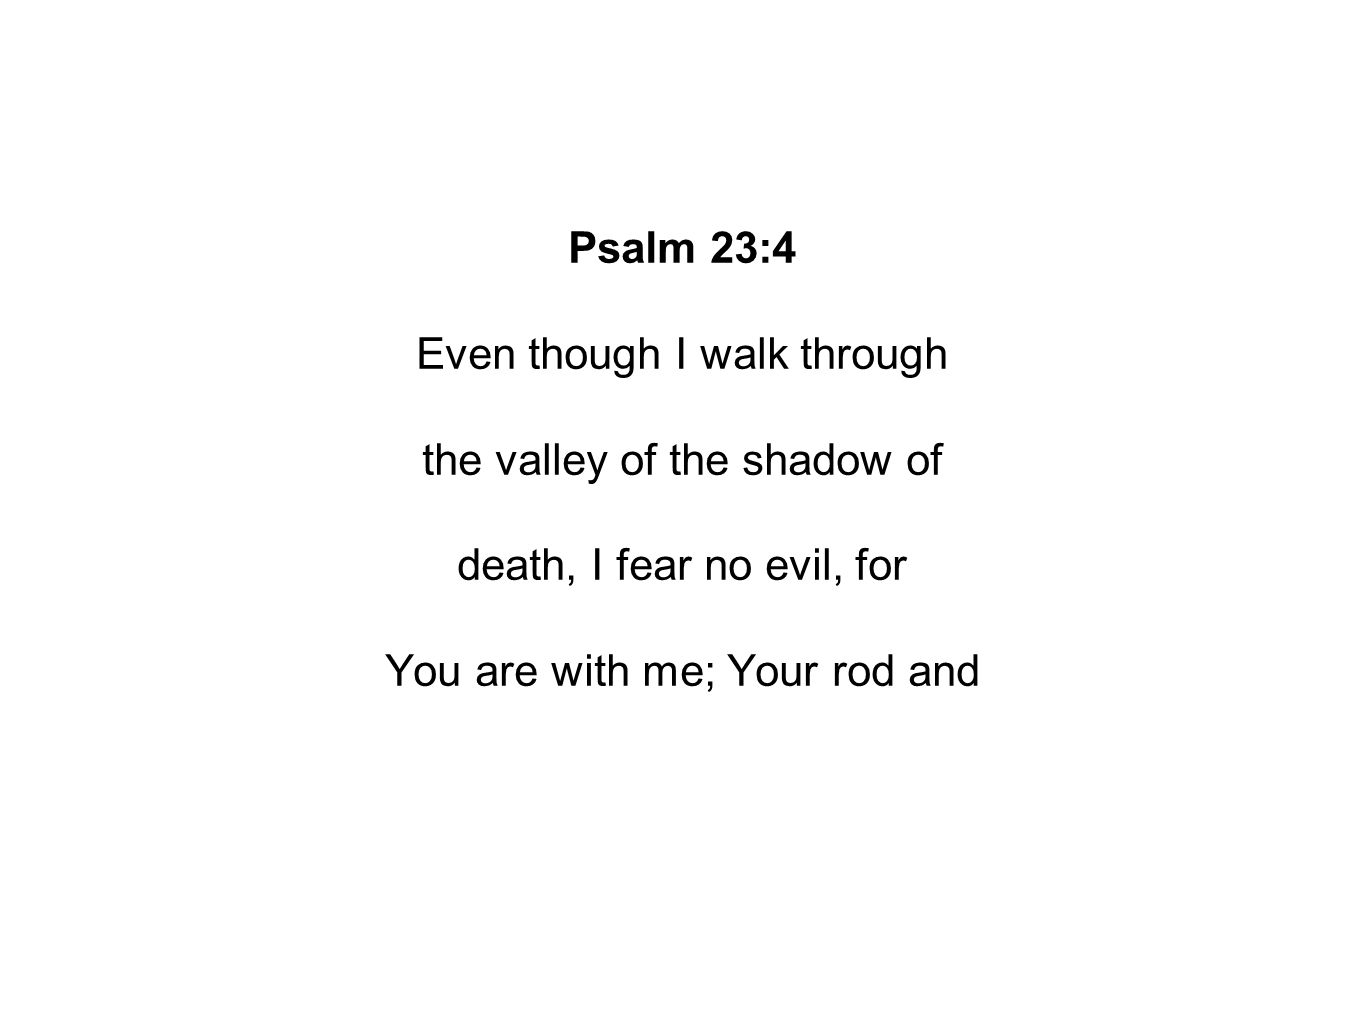 Psalm 23:4 Even though I walk through the valley of the shadow of death, I fear no evil, for You are with me; Your rod and